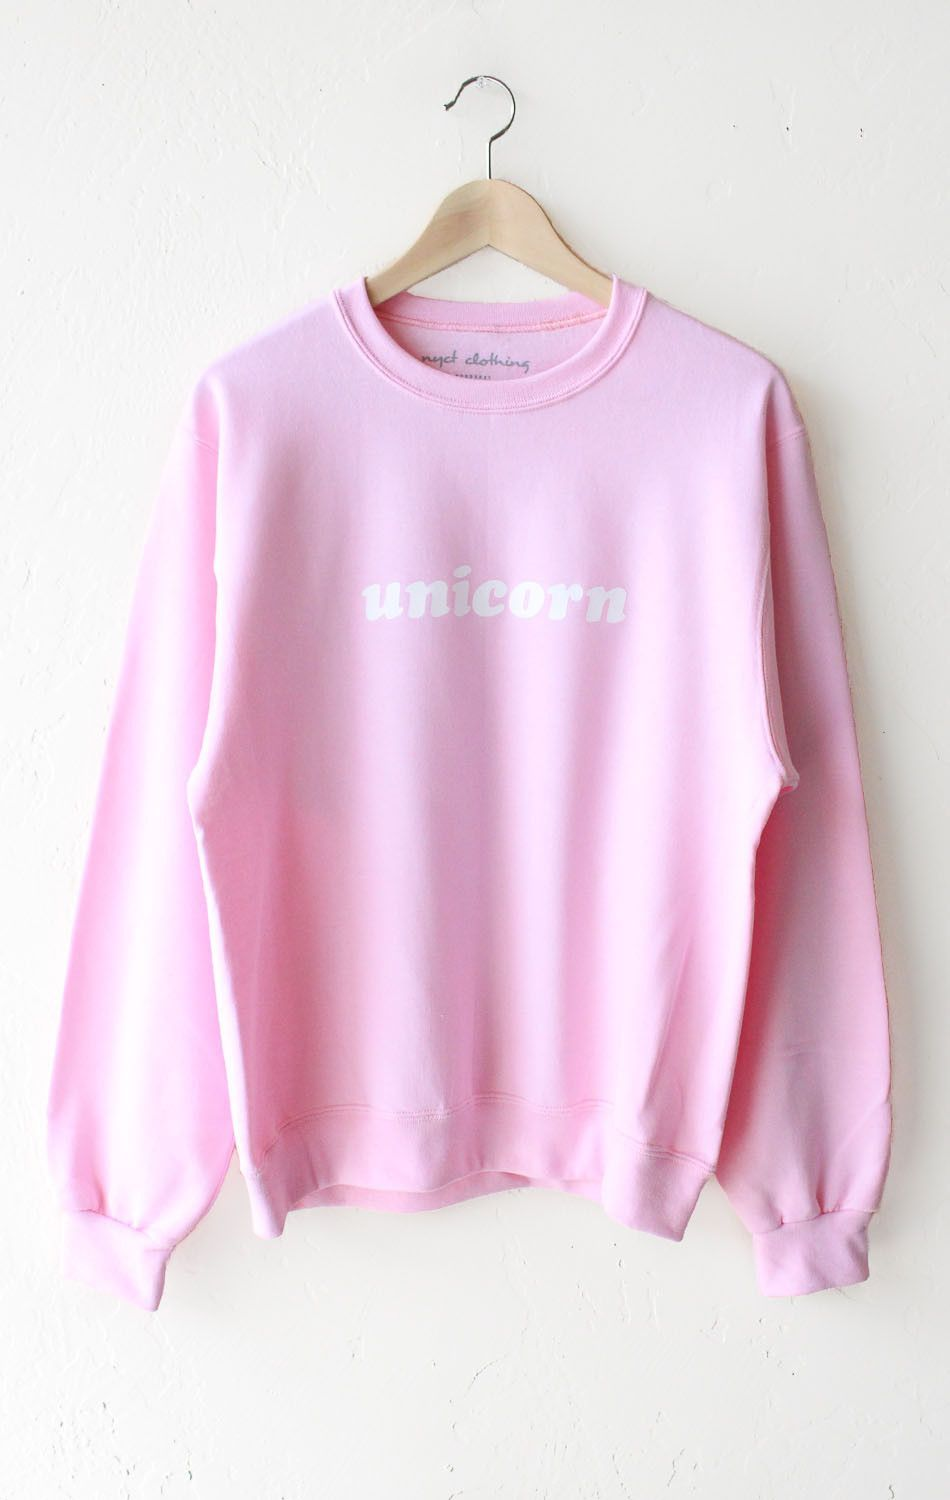 20295706 Description Details: 'Unicorn' oversized sweater in pink. Brand: NYCT  Clothing. Unisex/Oversized fit Measurements: (Size Guide) XS/S: 40